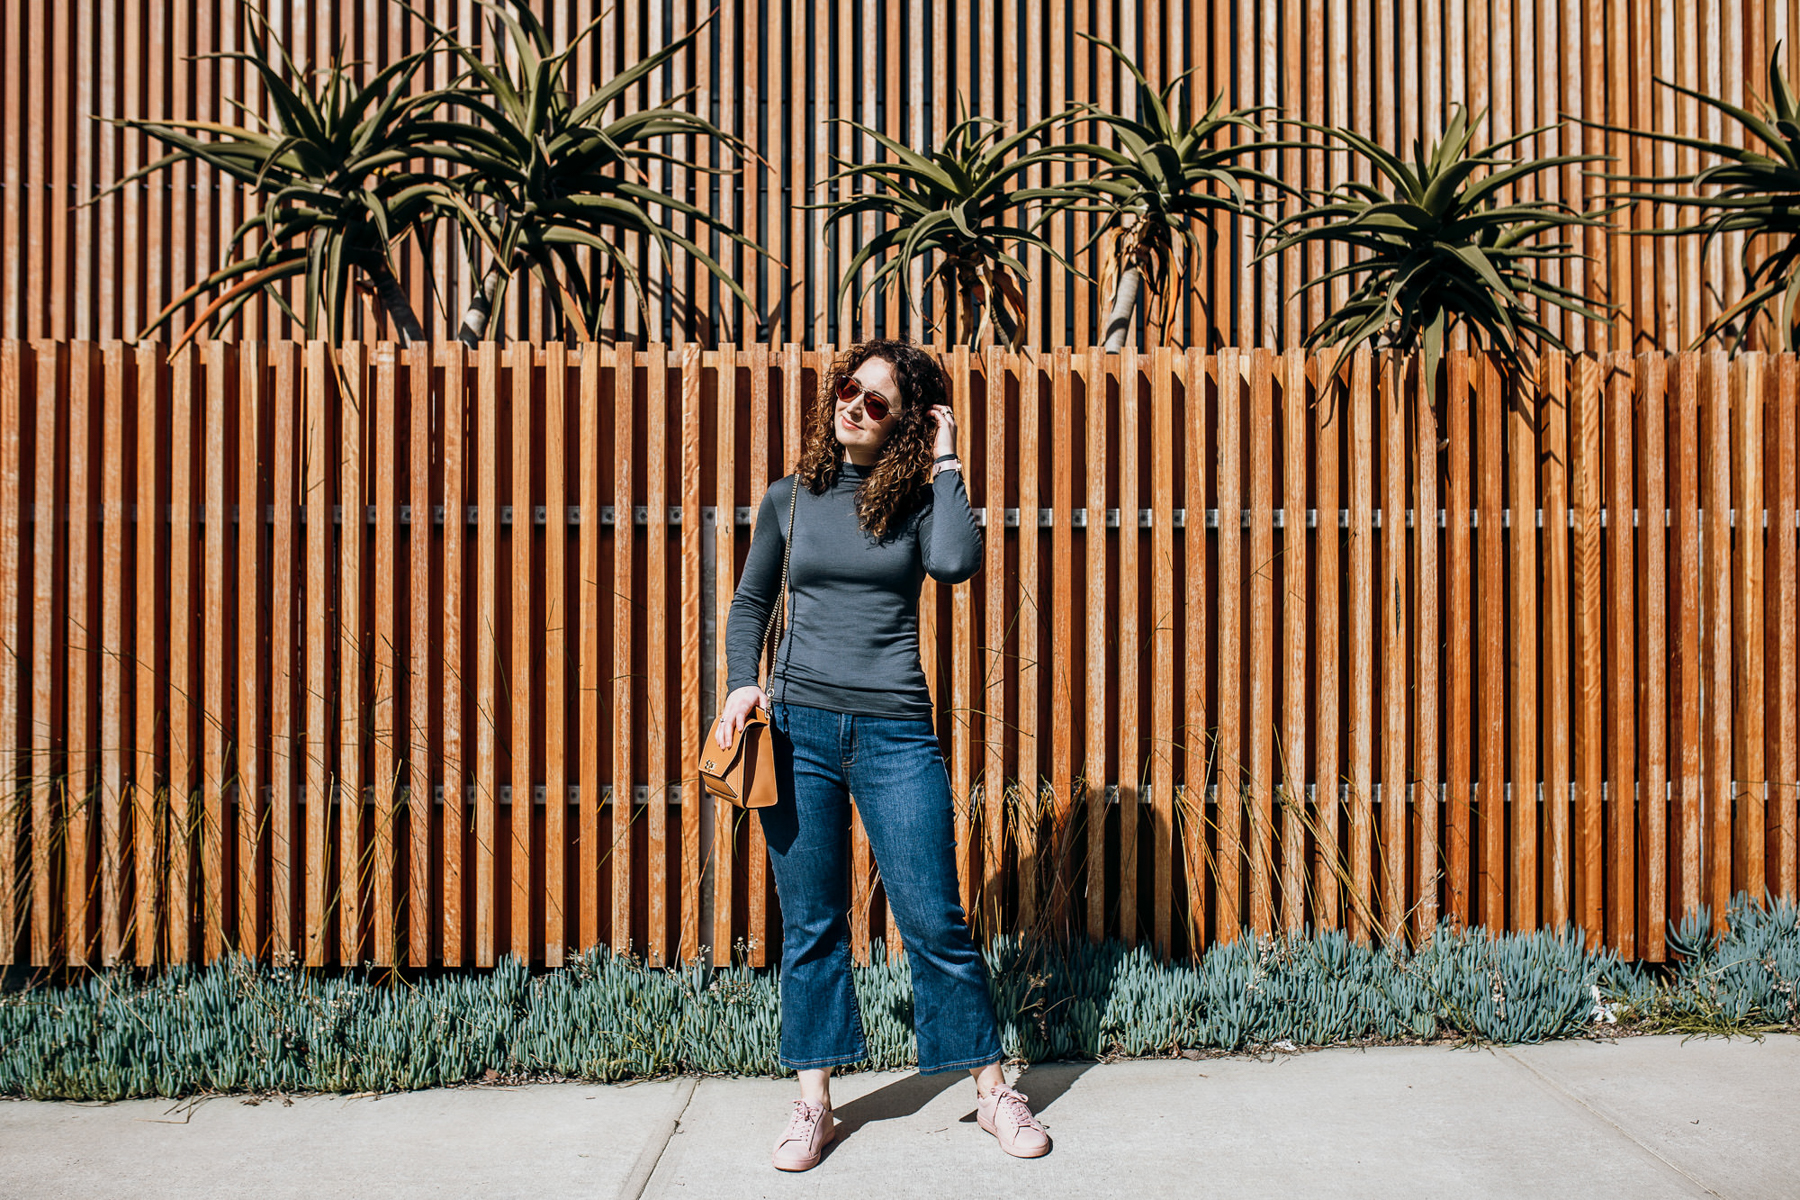 Megan Nielsen Rowan turtleneck in Merino jersey from The Fabric Store + Cropped flare Ash jeans in stretch denim from MRecht